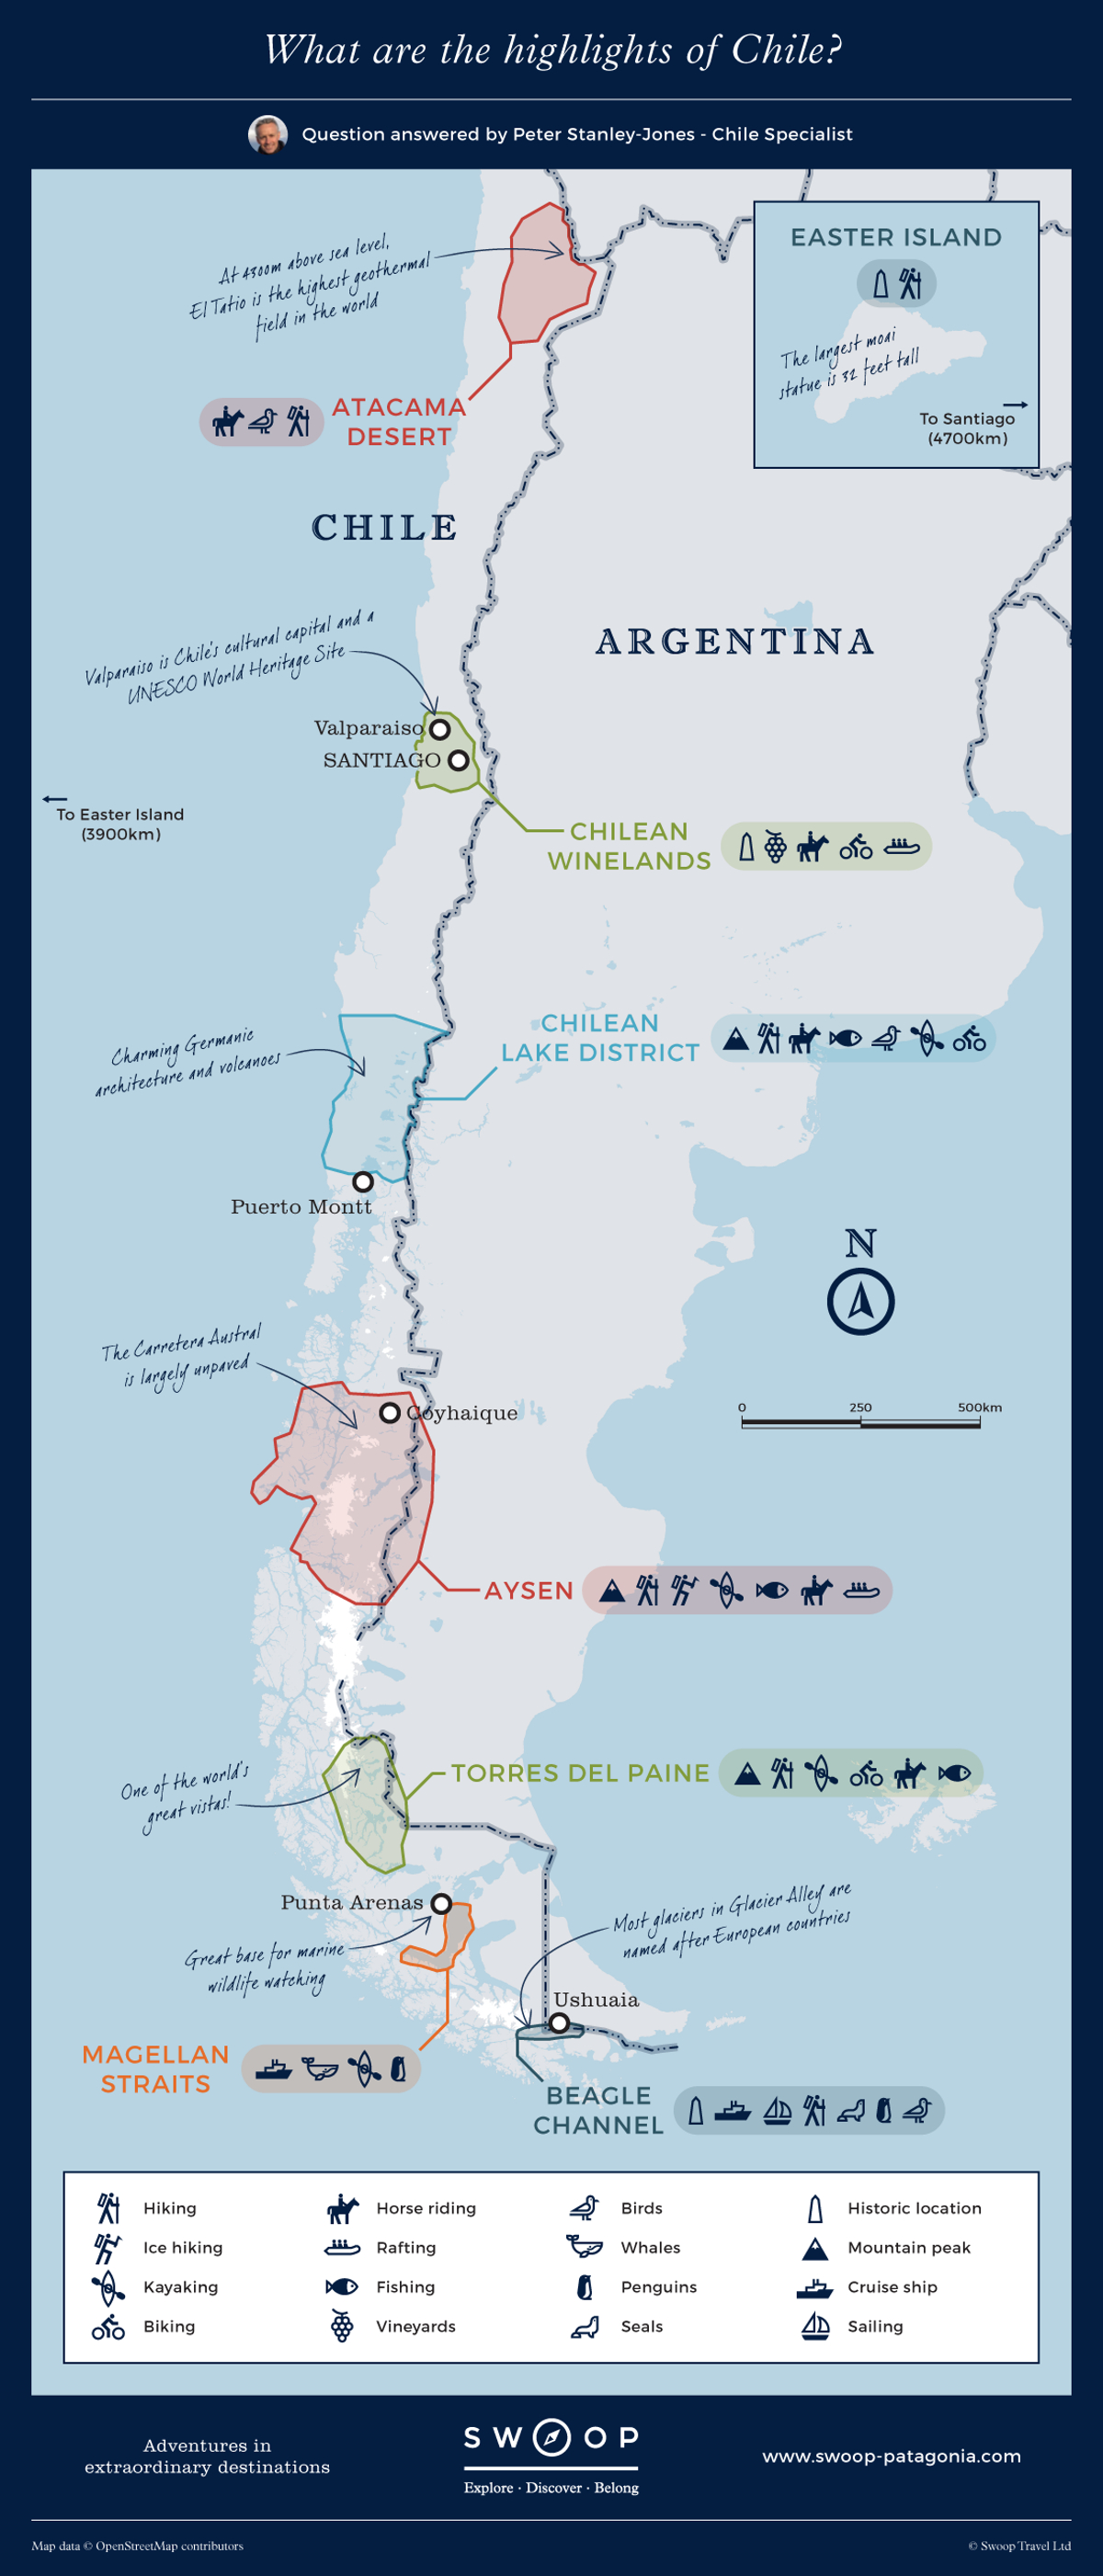 What are the highlights of Chile